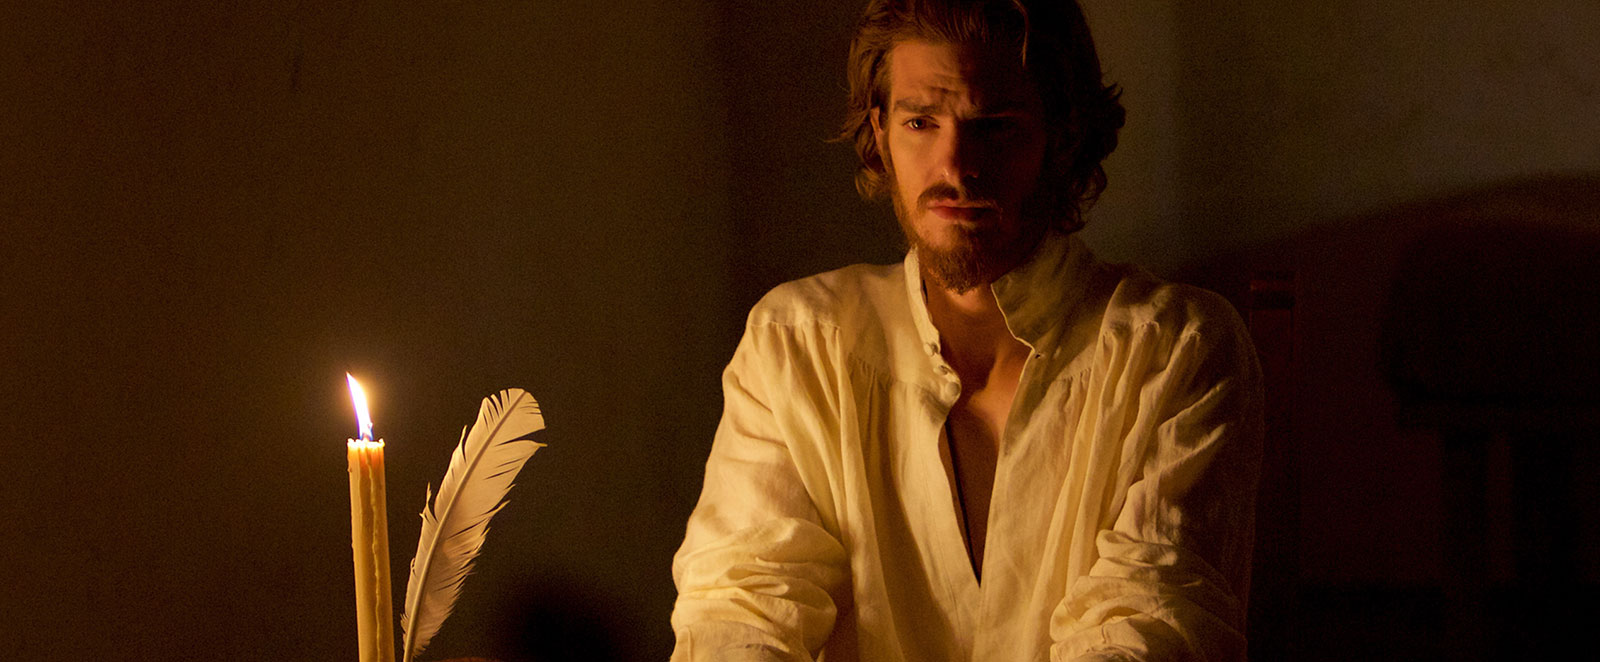 Andrew Garfield plays a Jesuit priest in Marin Scorsese's